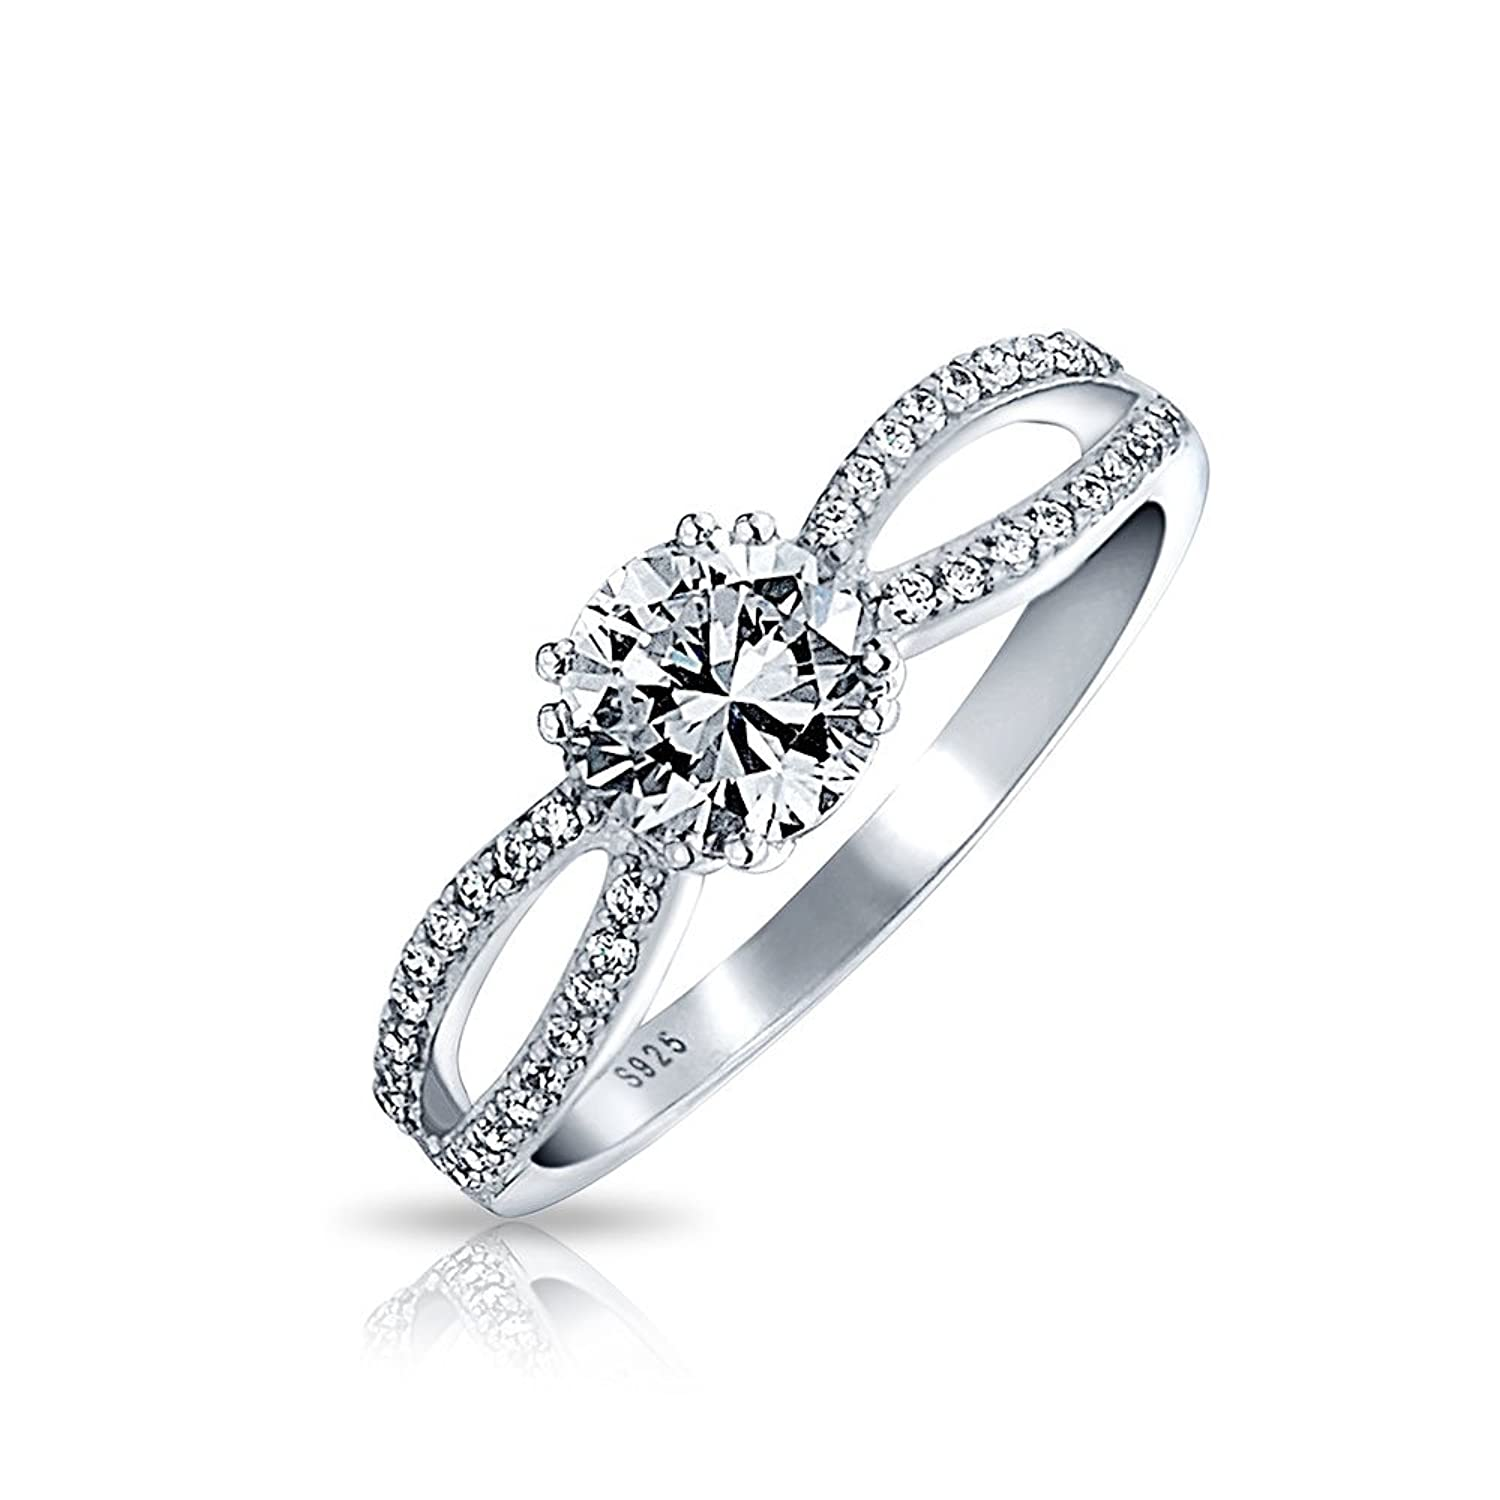 Amazon bling jewelry sterling silver round cz infinity amazon bling jewelry sterling silver round cz infinity engagement ring womens rings jewelry buycottarizona Choice Image